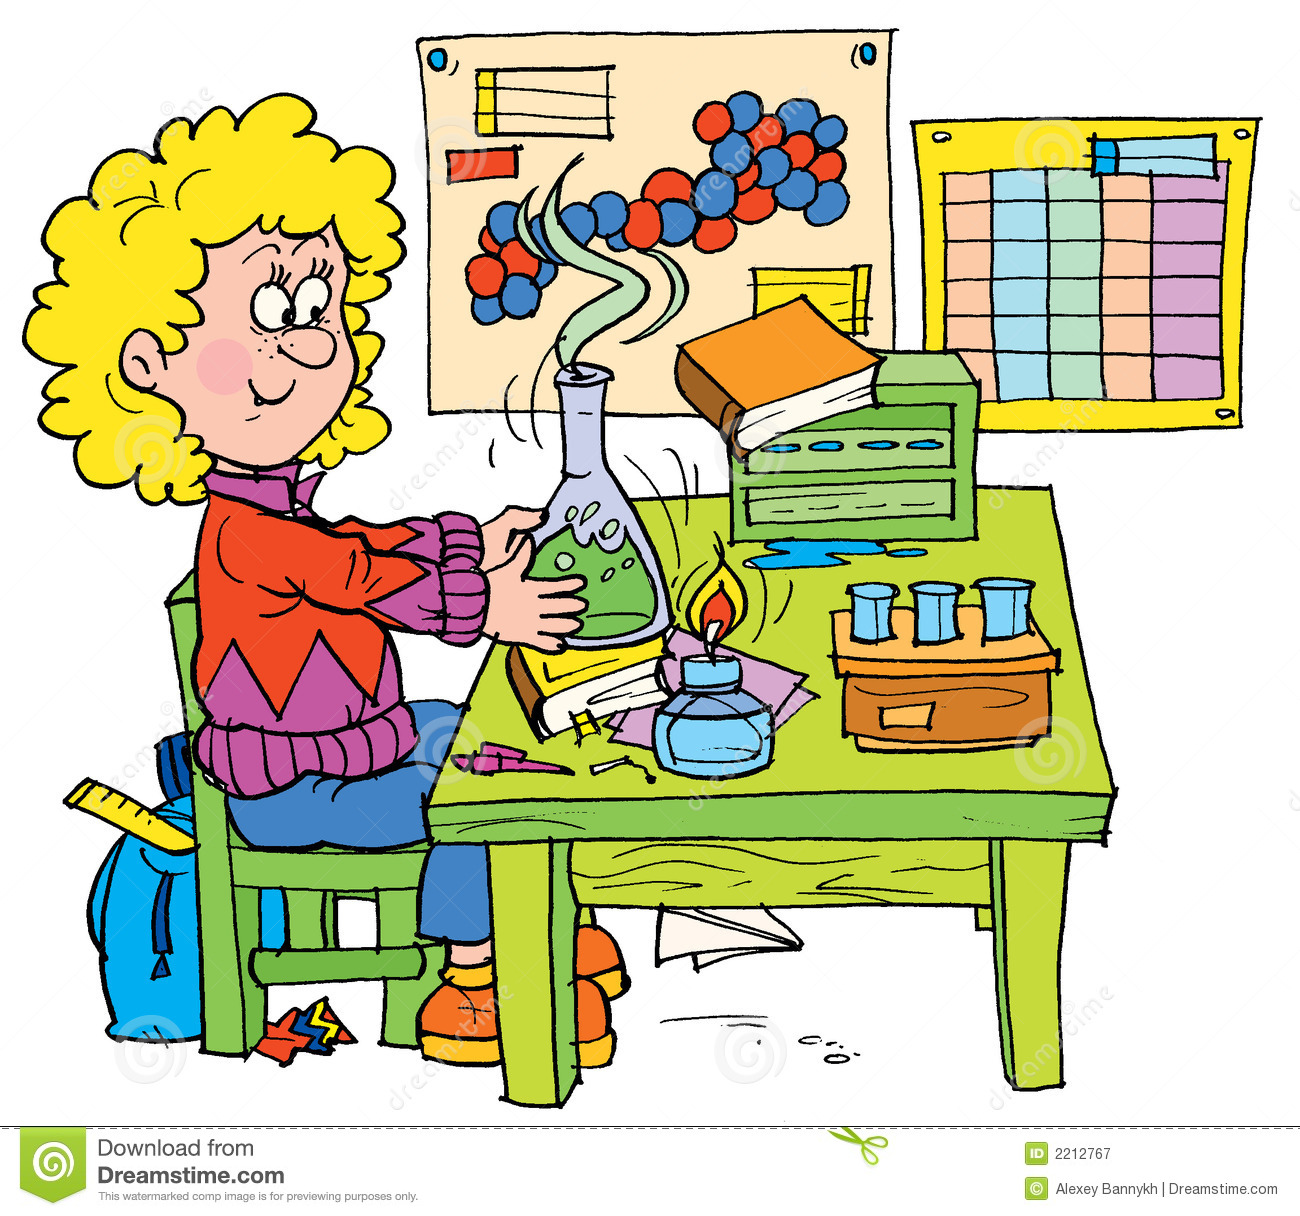 Chemistry clip art download.